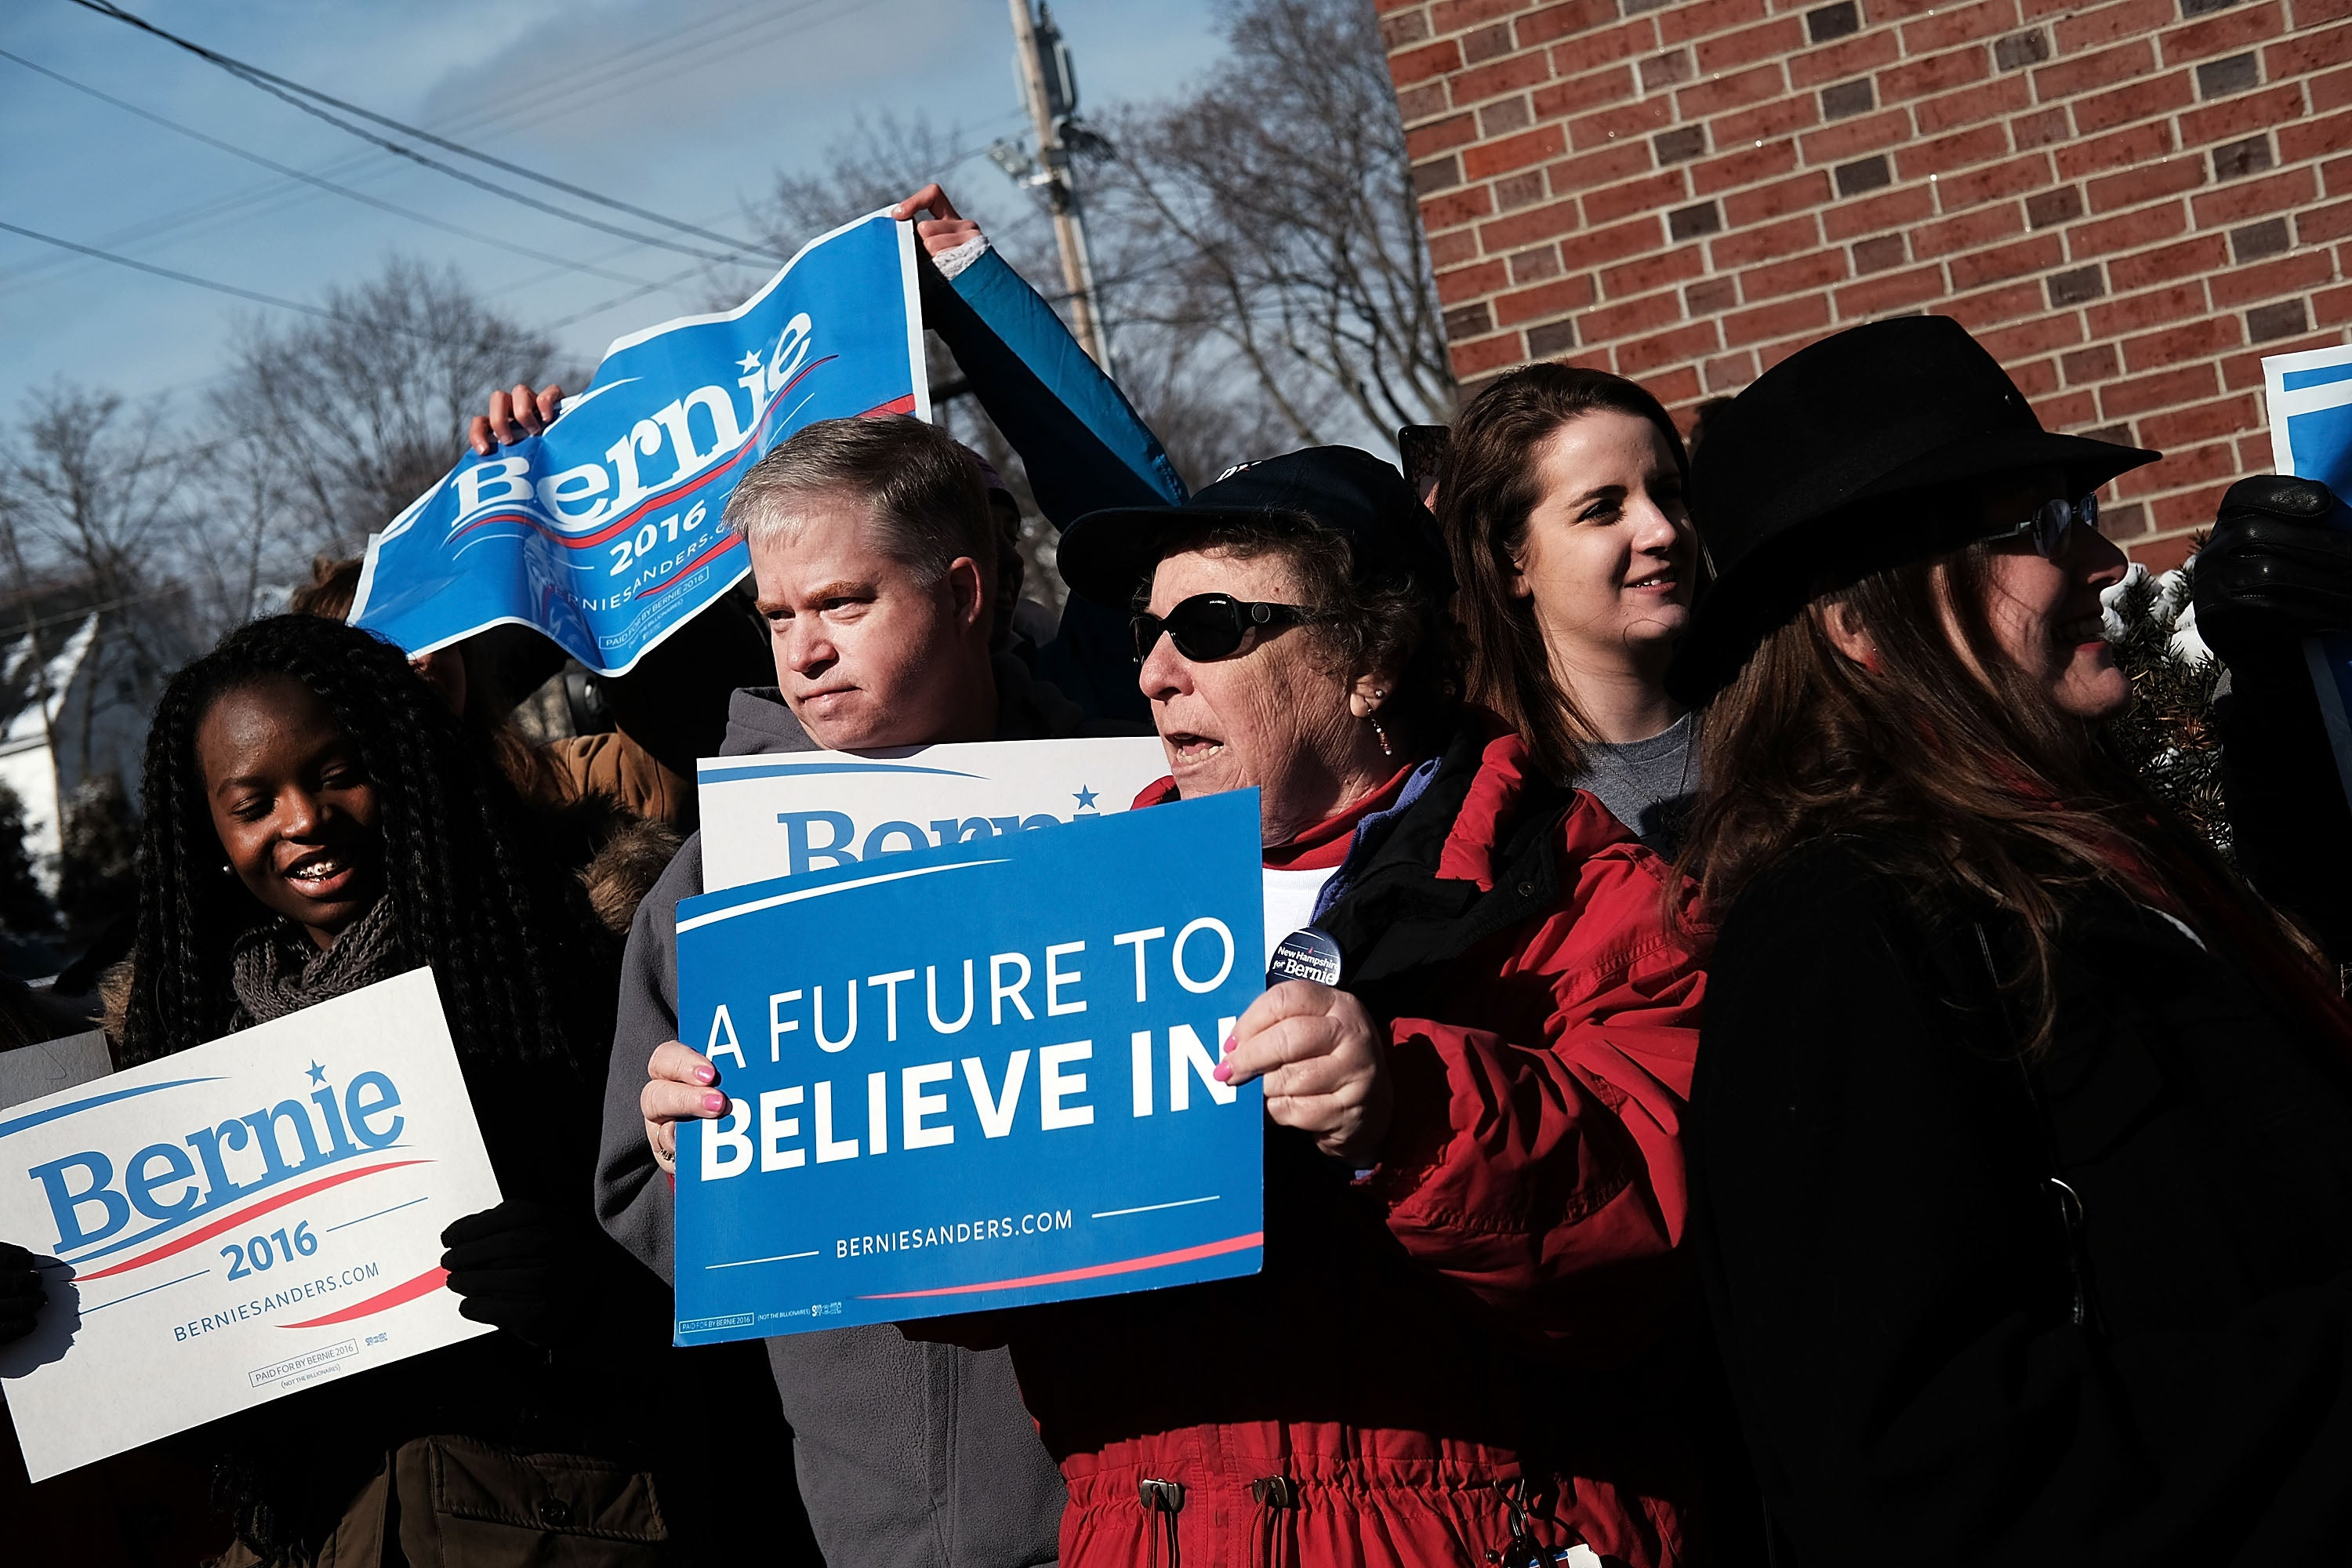 Supporters of Bernie Sanders wait for his arrival into downtown Concord, N.H. on Primary Day.